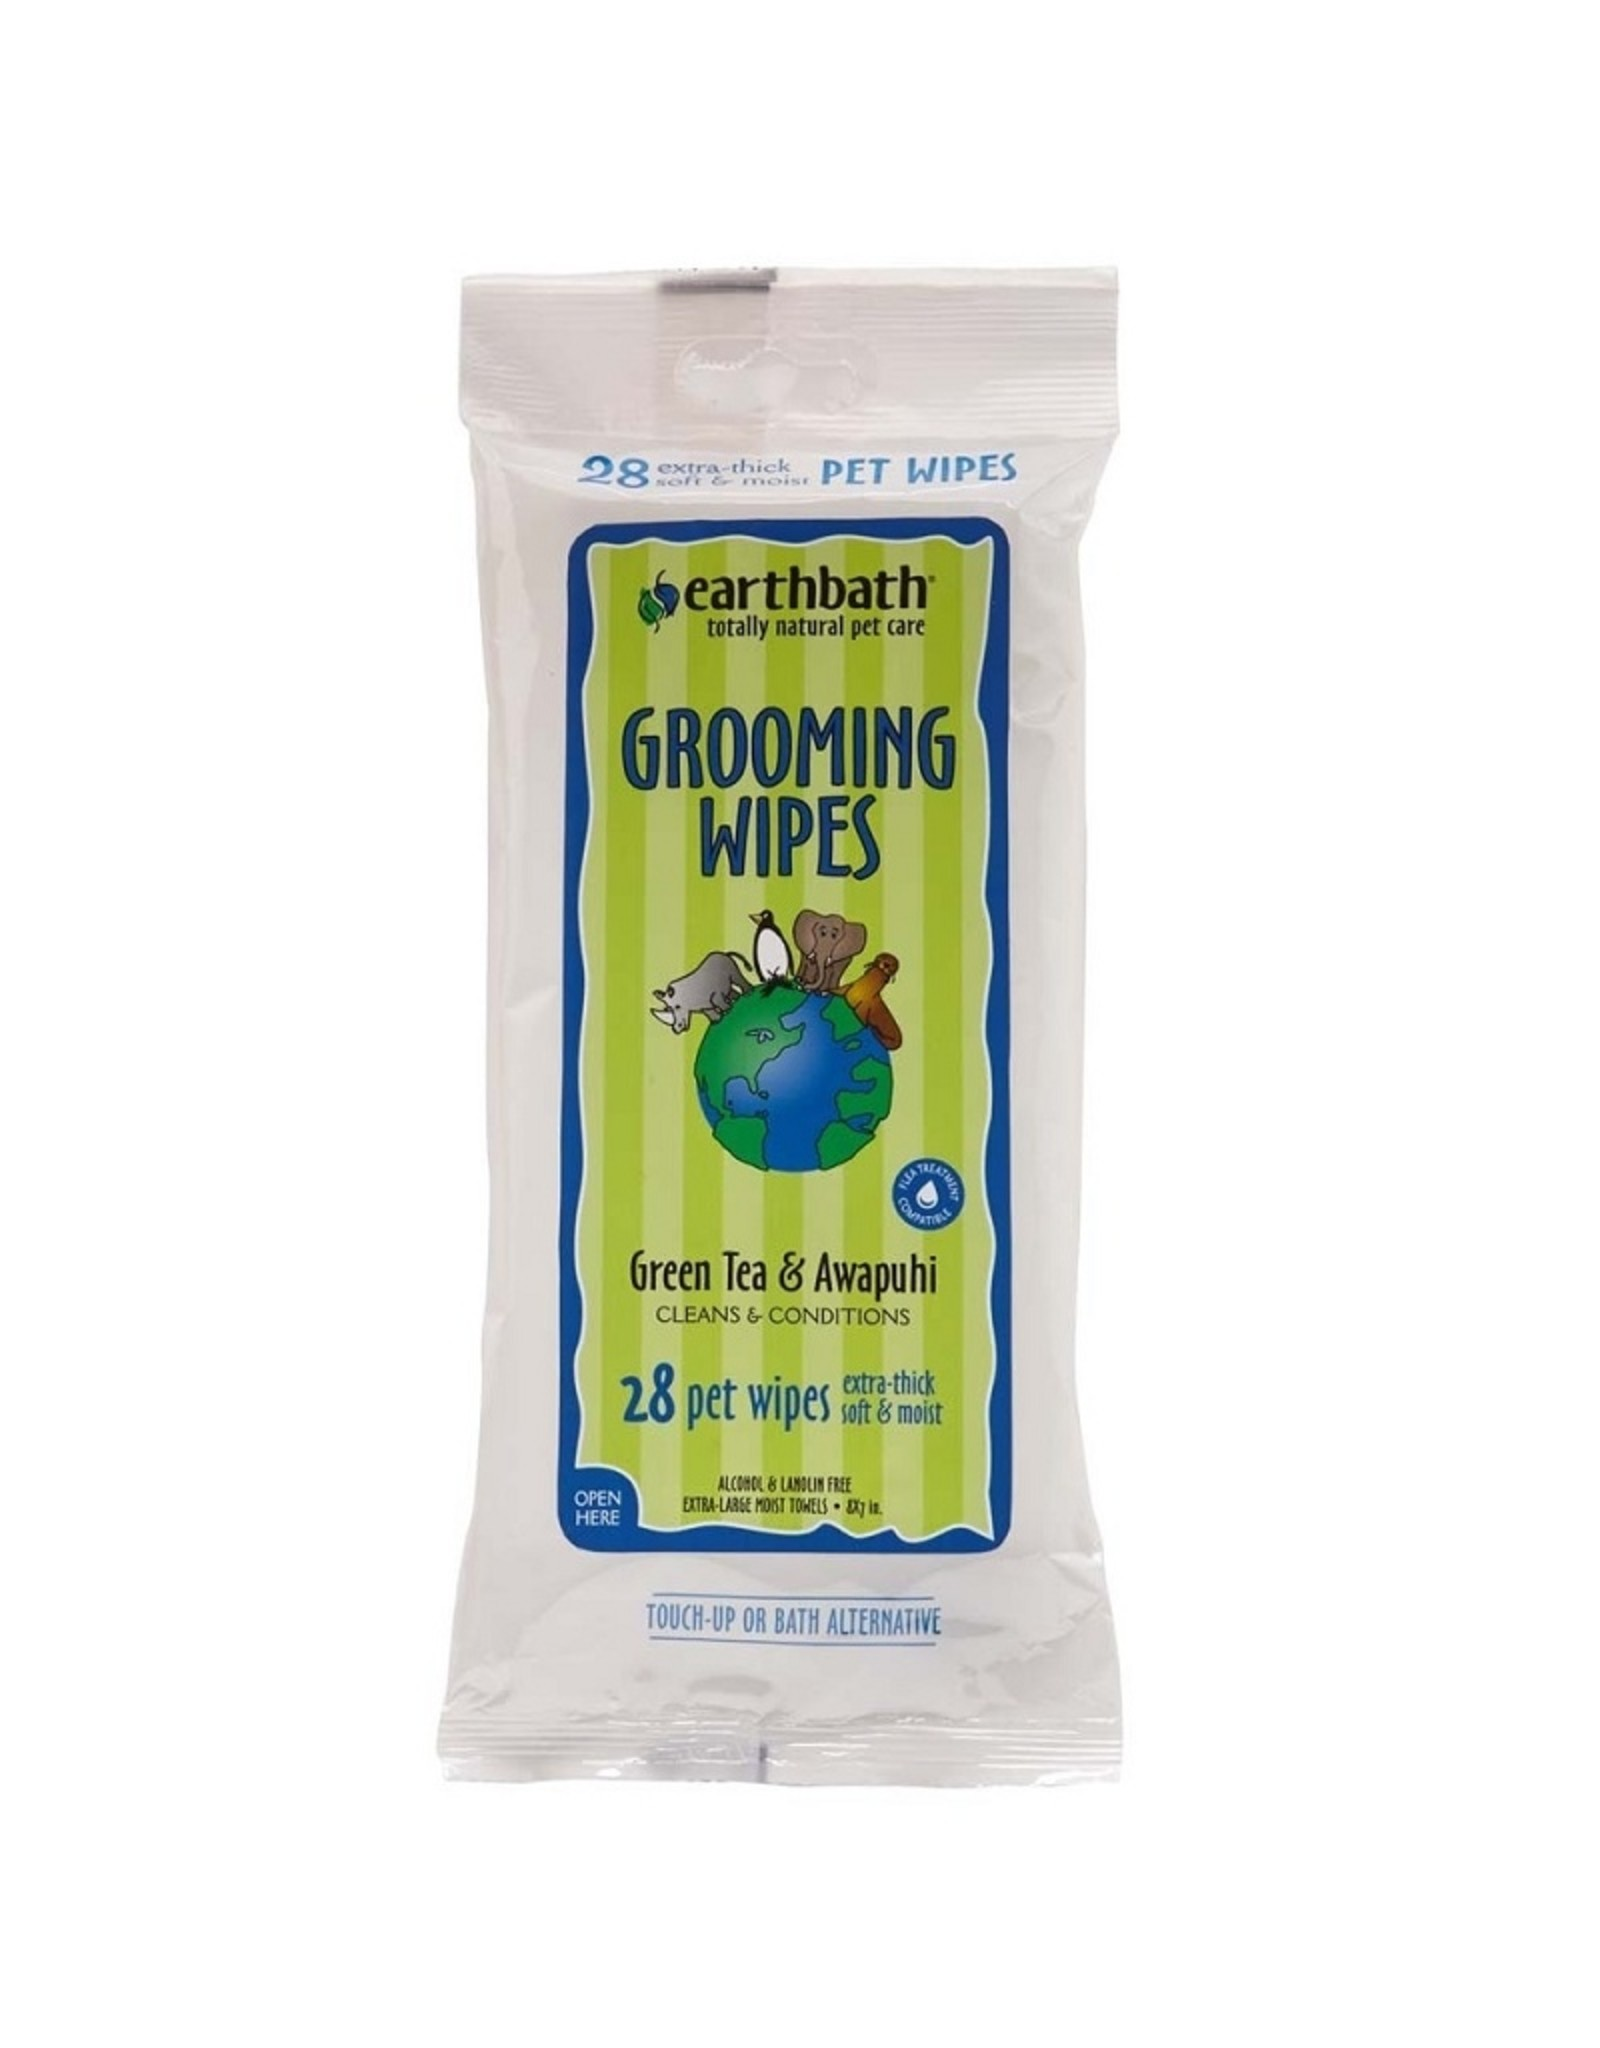 Earthbath Earthbath Grooming Wipes Green Tea Awapuhi 28ct